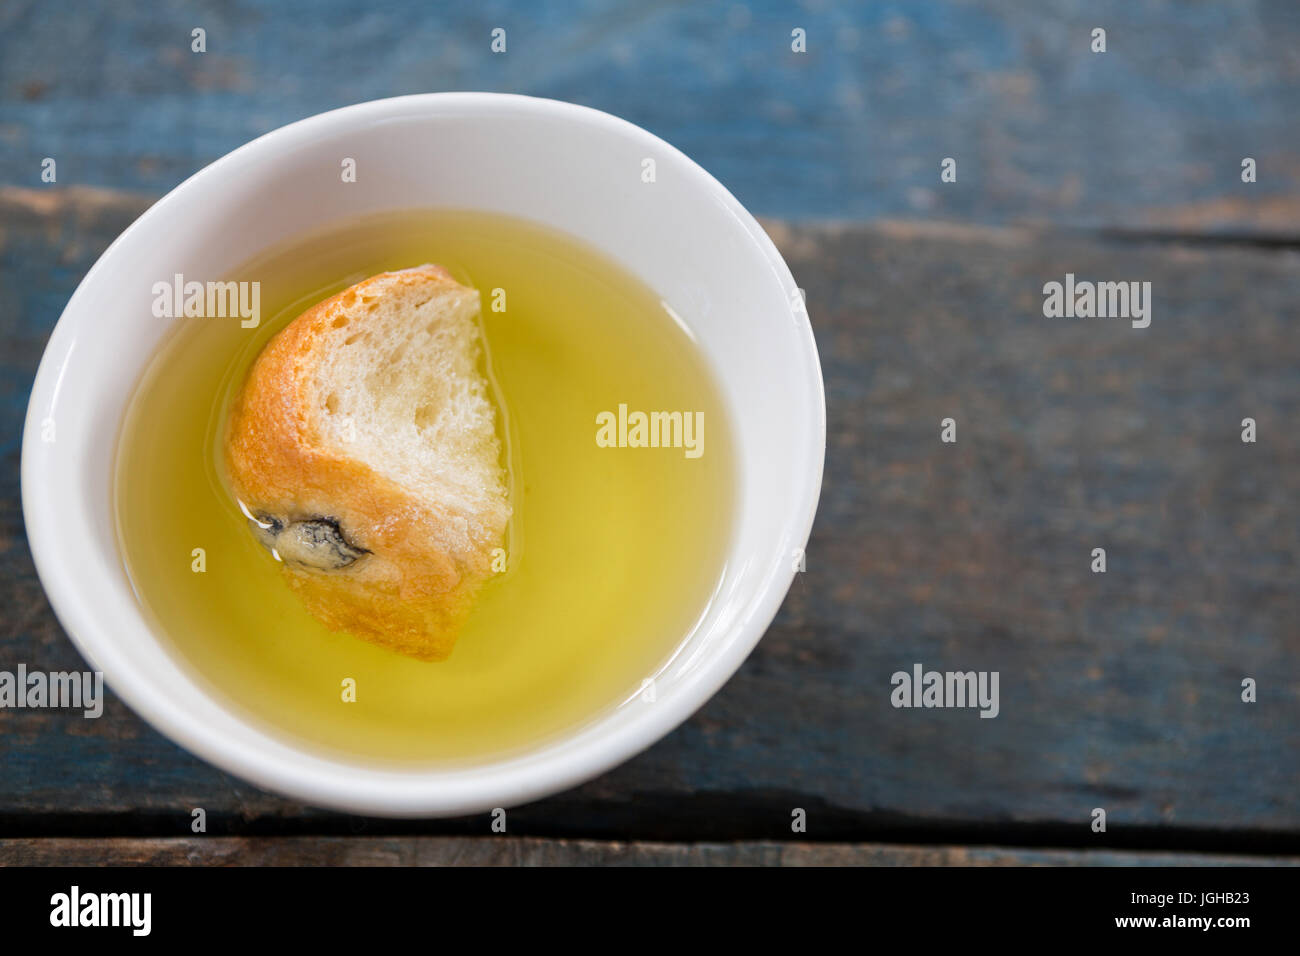 Piece of bread soaked in olive oil in white bowl - Stock Image